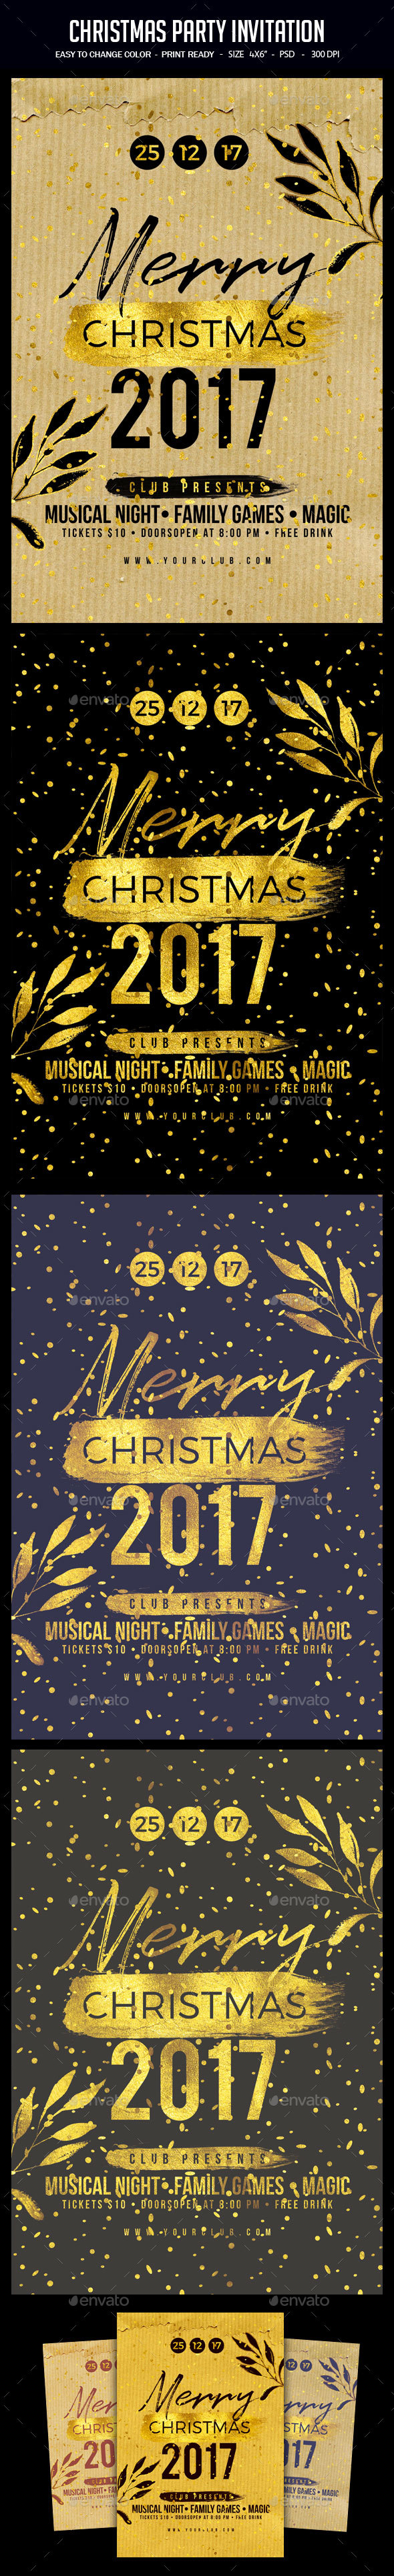 Christmas Party Invitation - Clubs & Parties Events